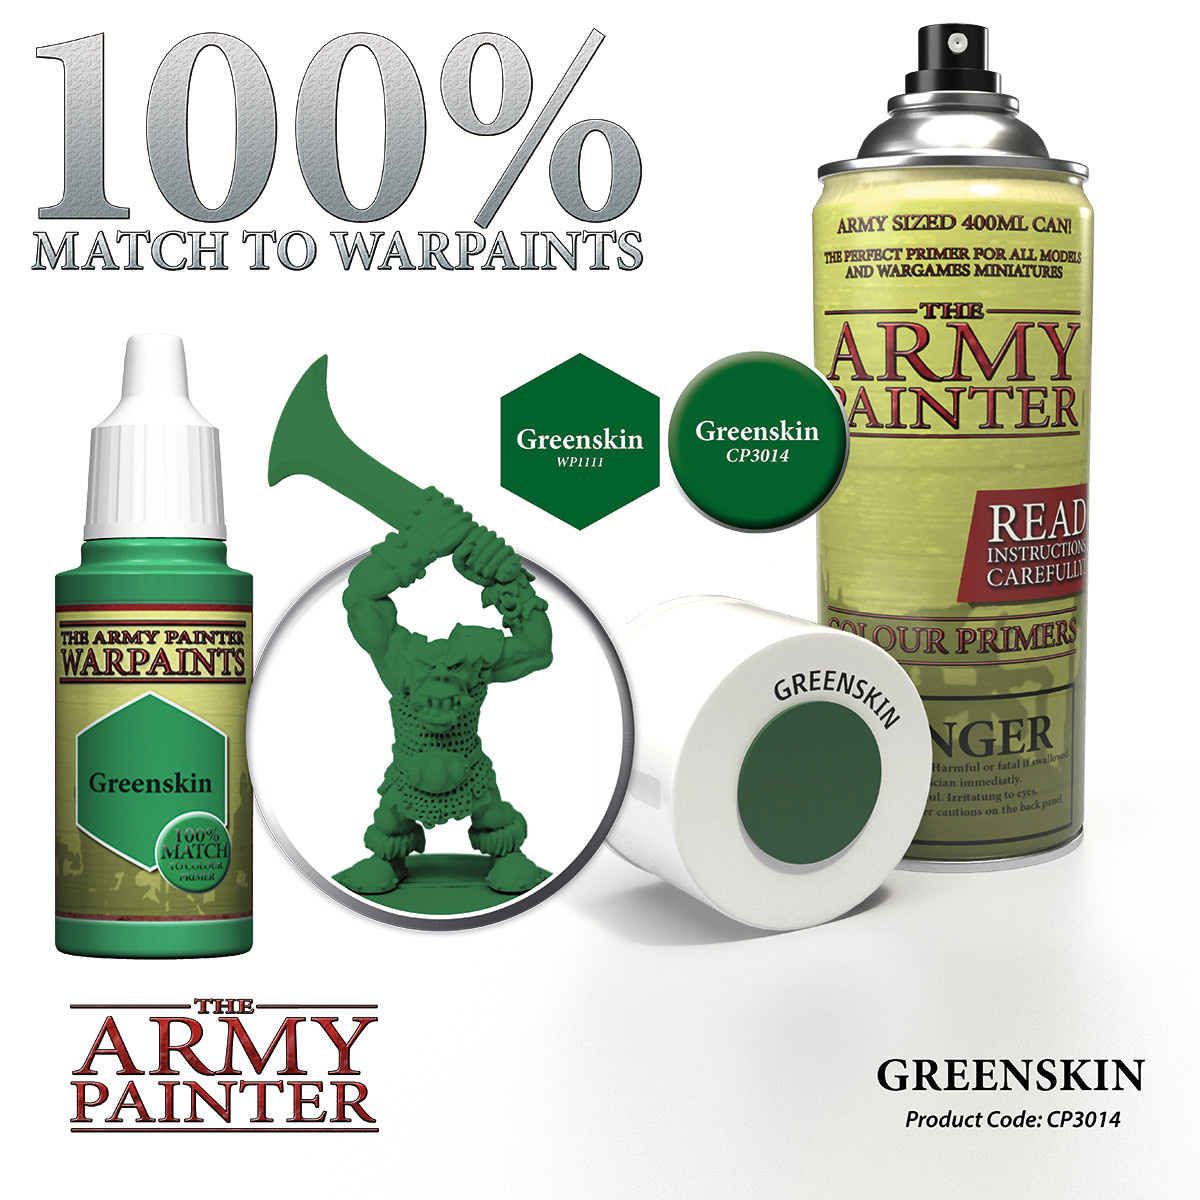 The Army Painter Primer: Colour Greenskin